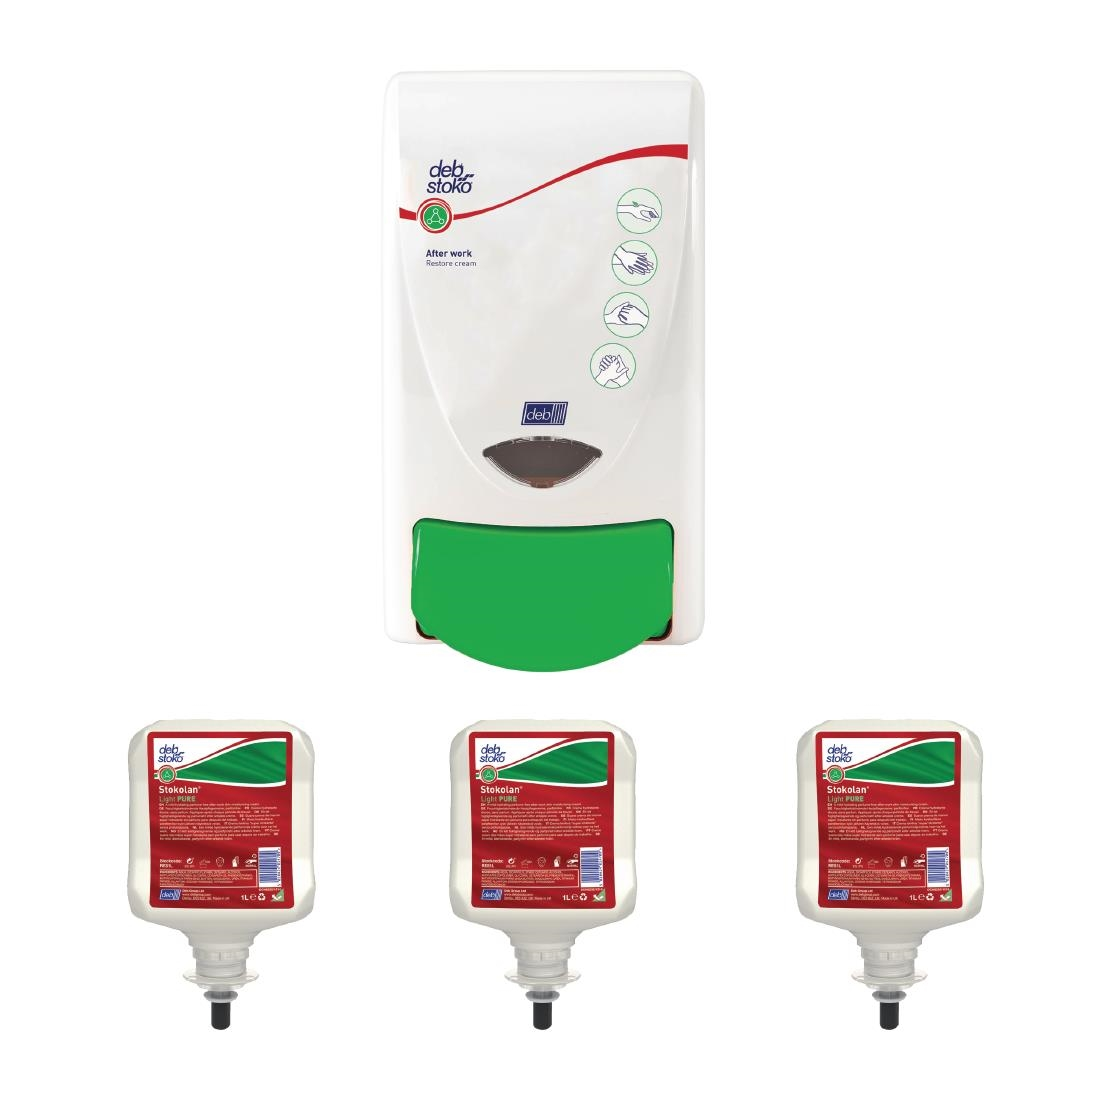 Special Offer Deb Restore Hand Cream Dispenser and 3 Refill Cartridges